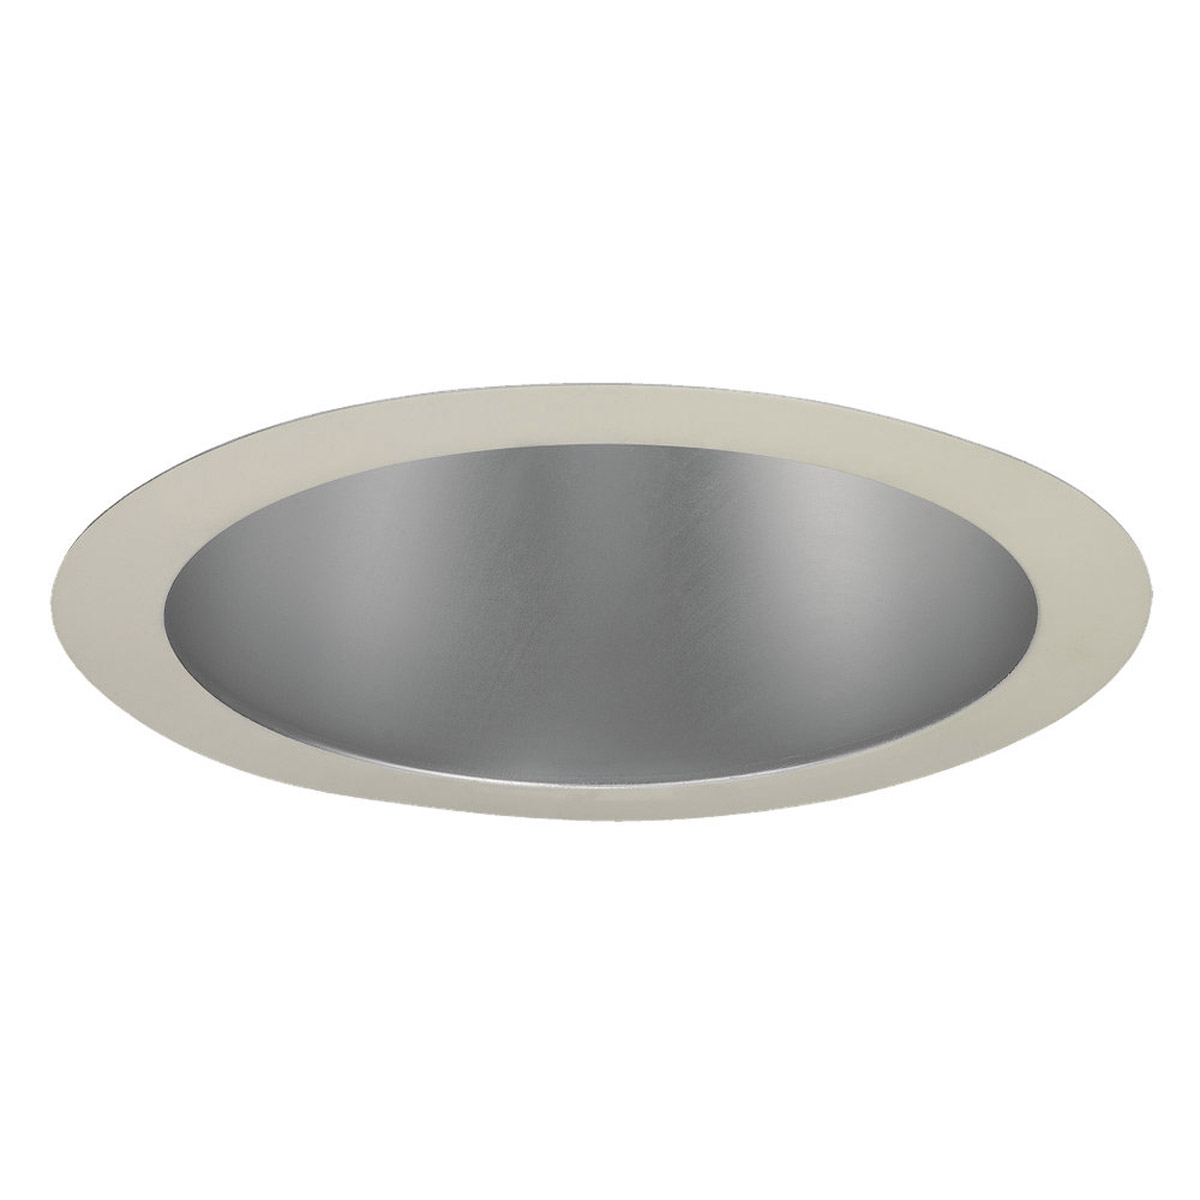 Sea Gull Lighting Signature Recessed Trim Only in Satin Nickel - White 11132AT-861